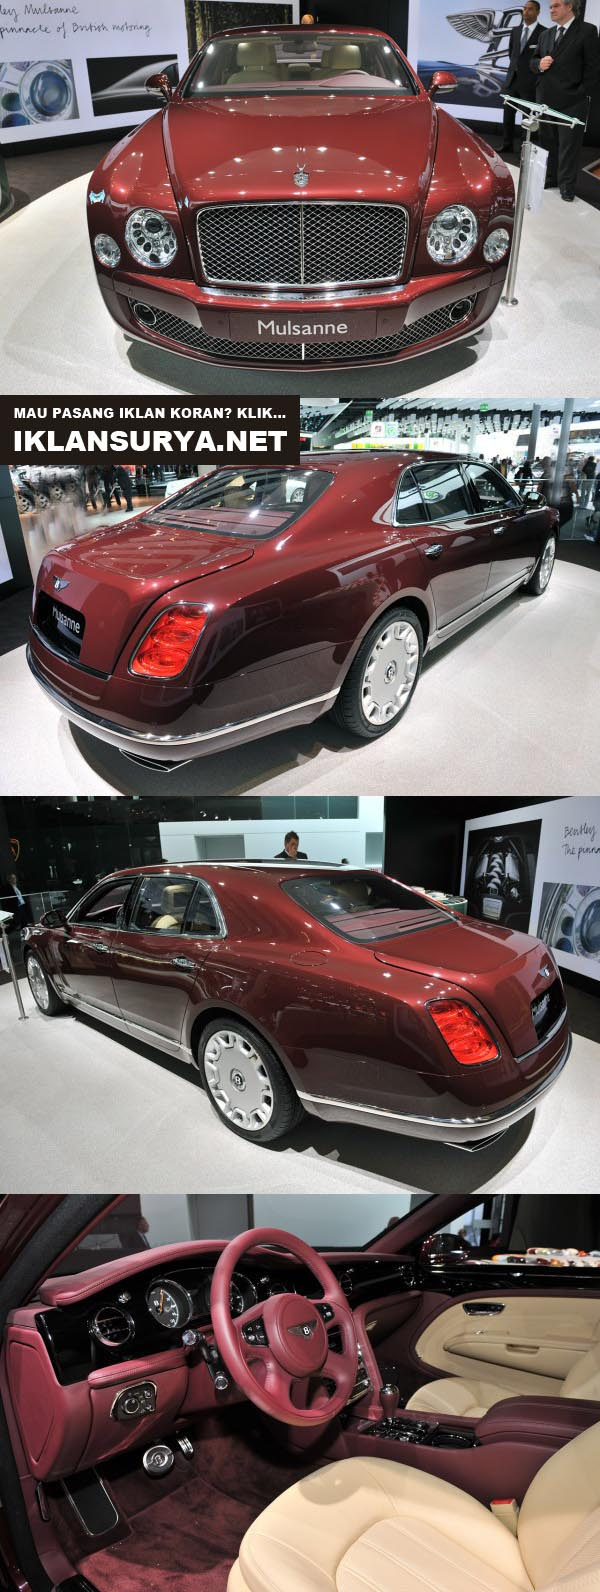 Modifikasi Mobil Bentley Mulsanne, IT Full Mewah!